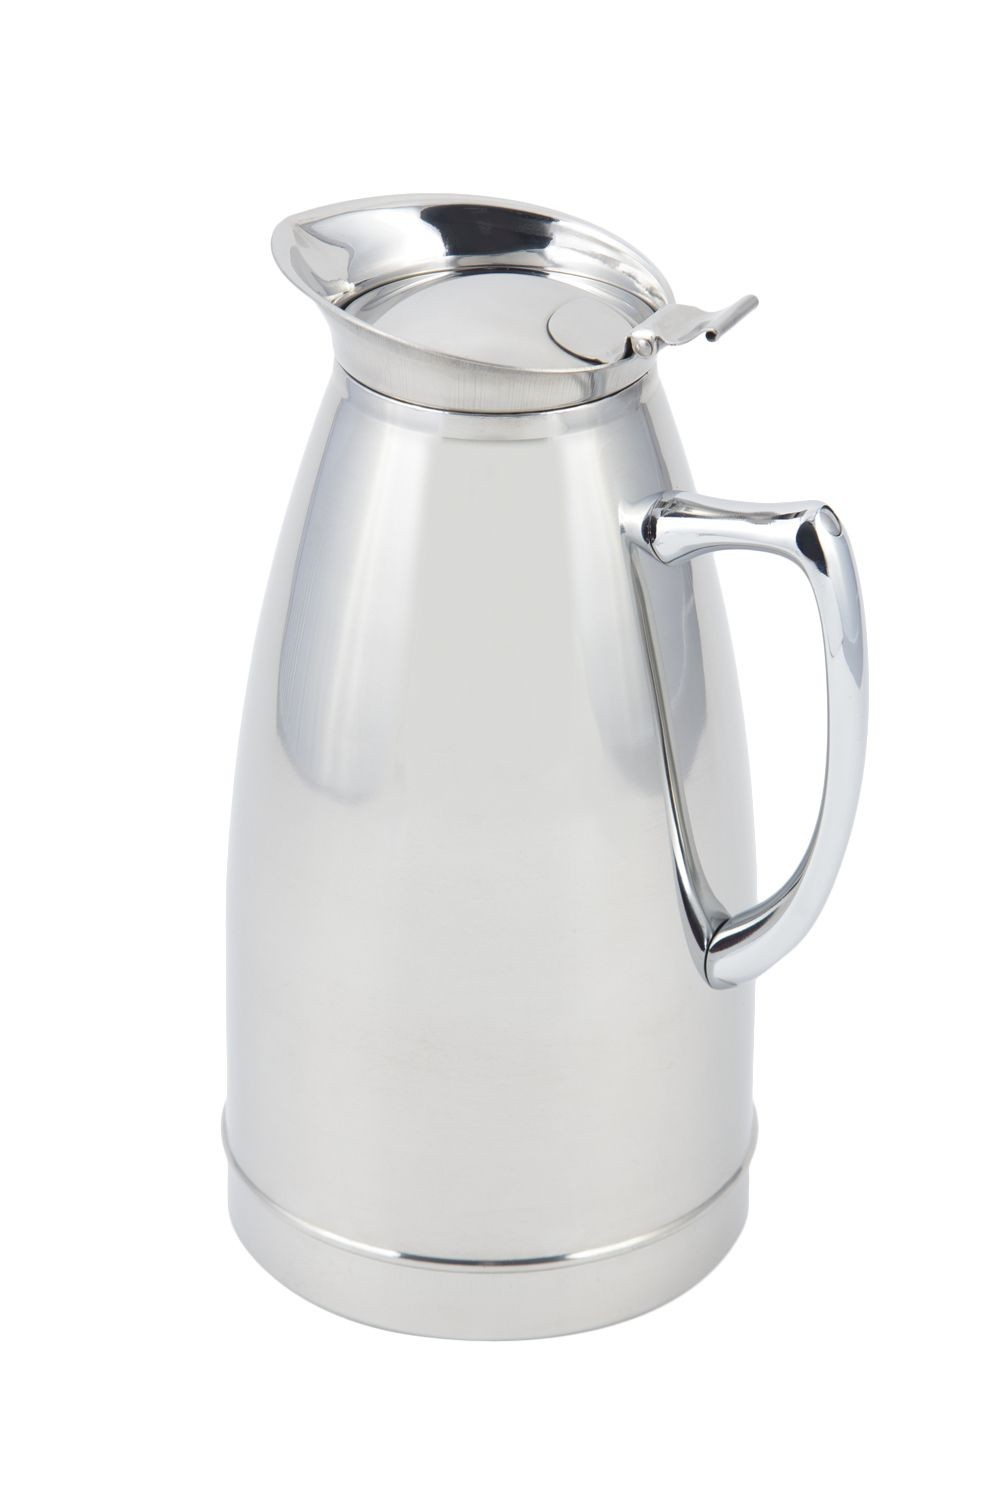 Bon Chef 4054 Stainless Steel Insulated Server, 1 1/2 Qt., Set of 6